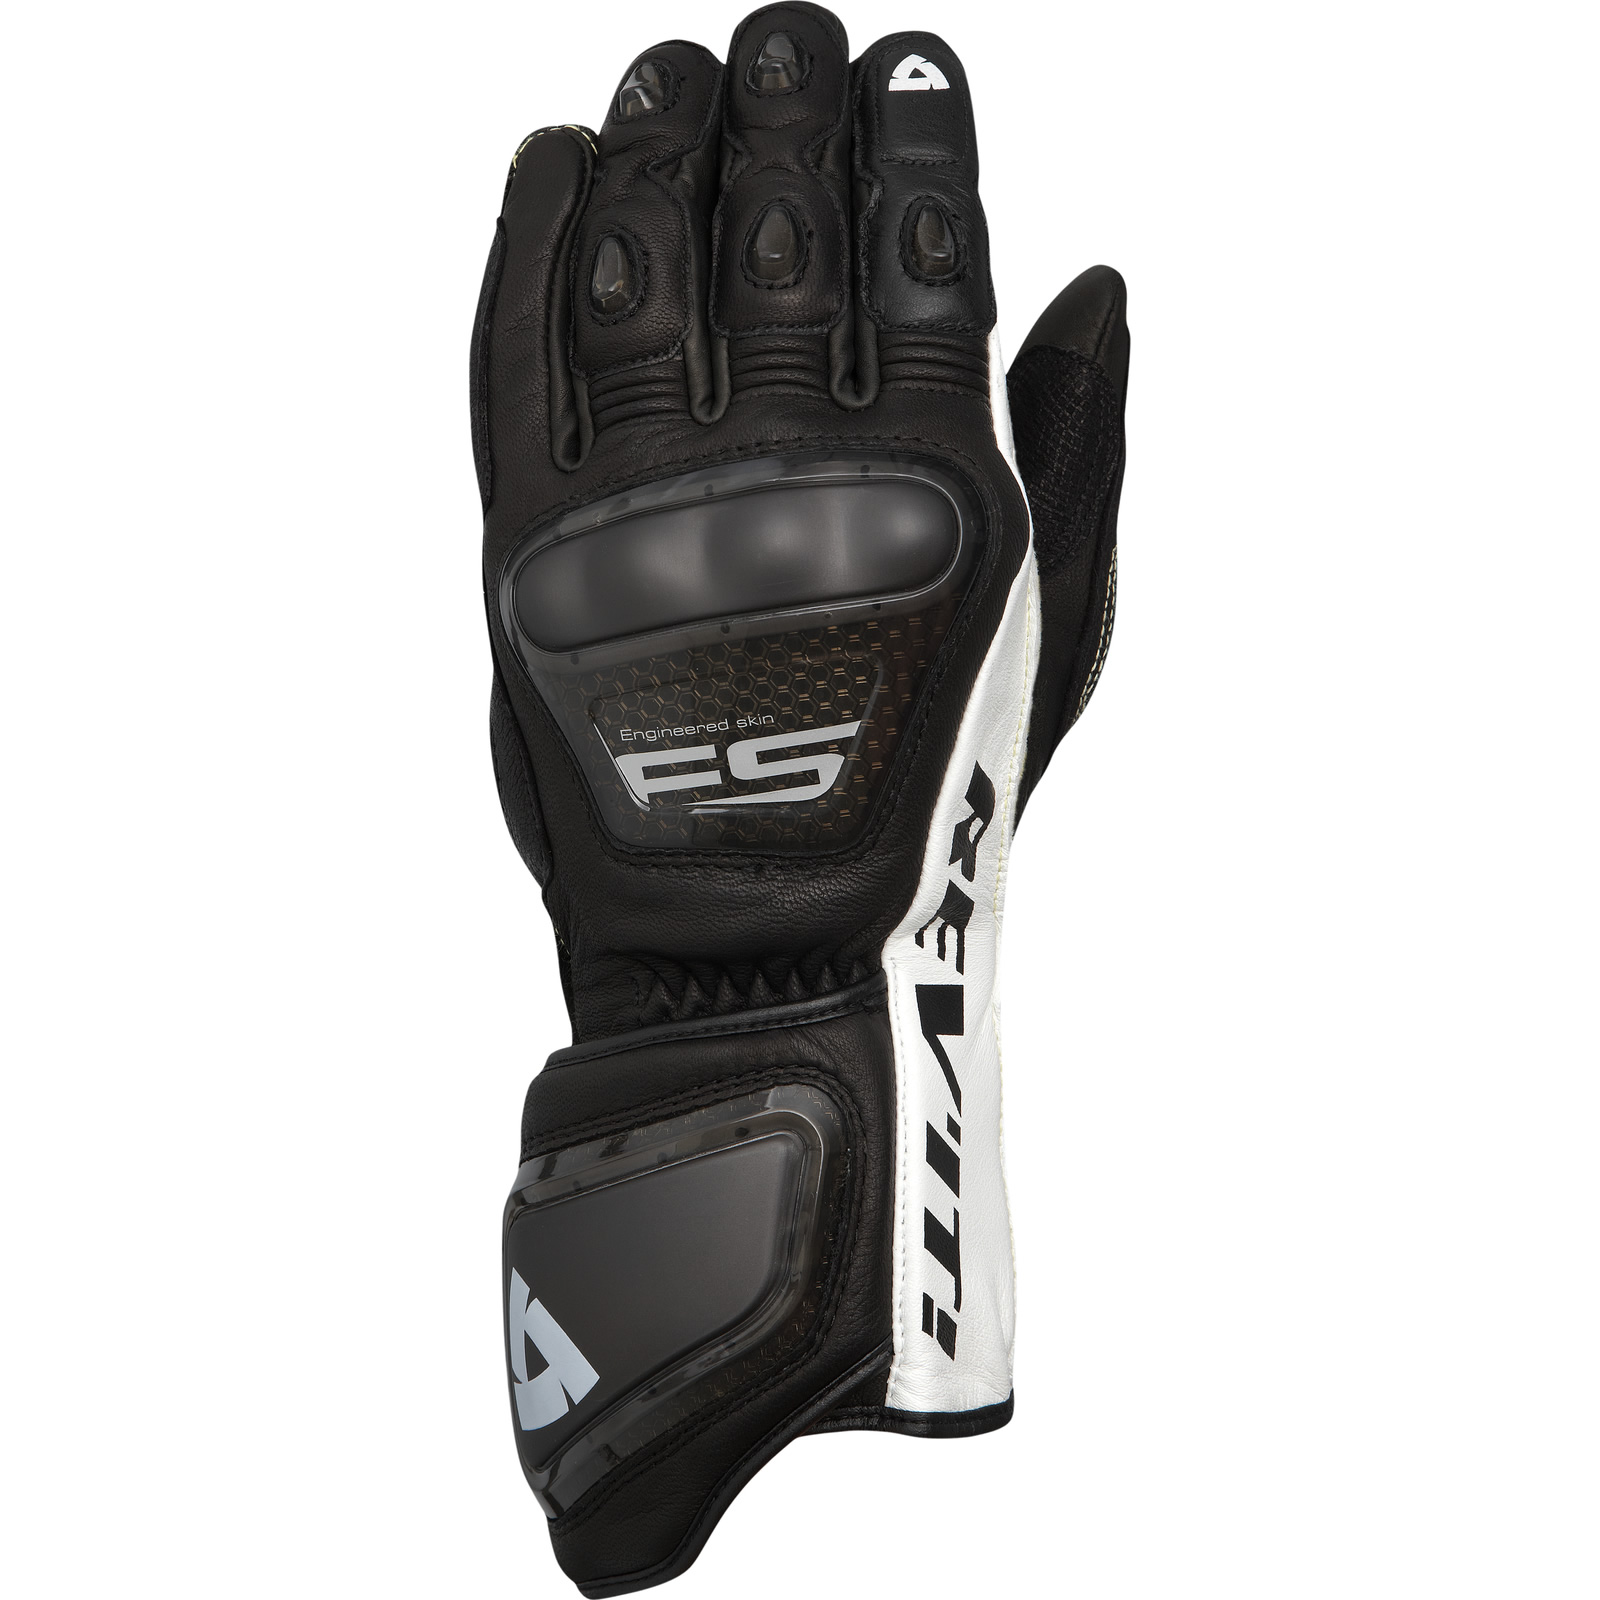 Motorcycle gloves palm protection - Rev It Jerez Motorcycle Gloves Kanagroo Leather Race